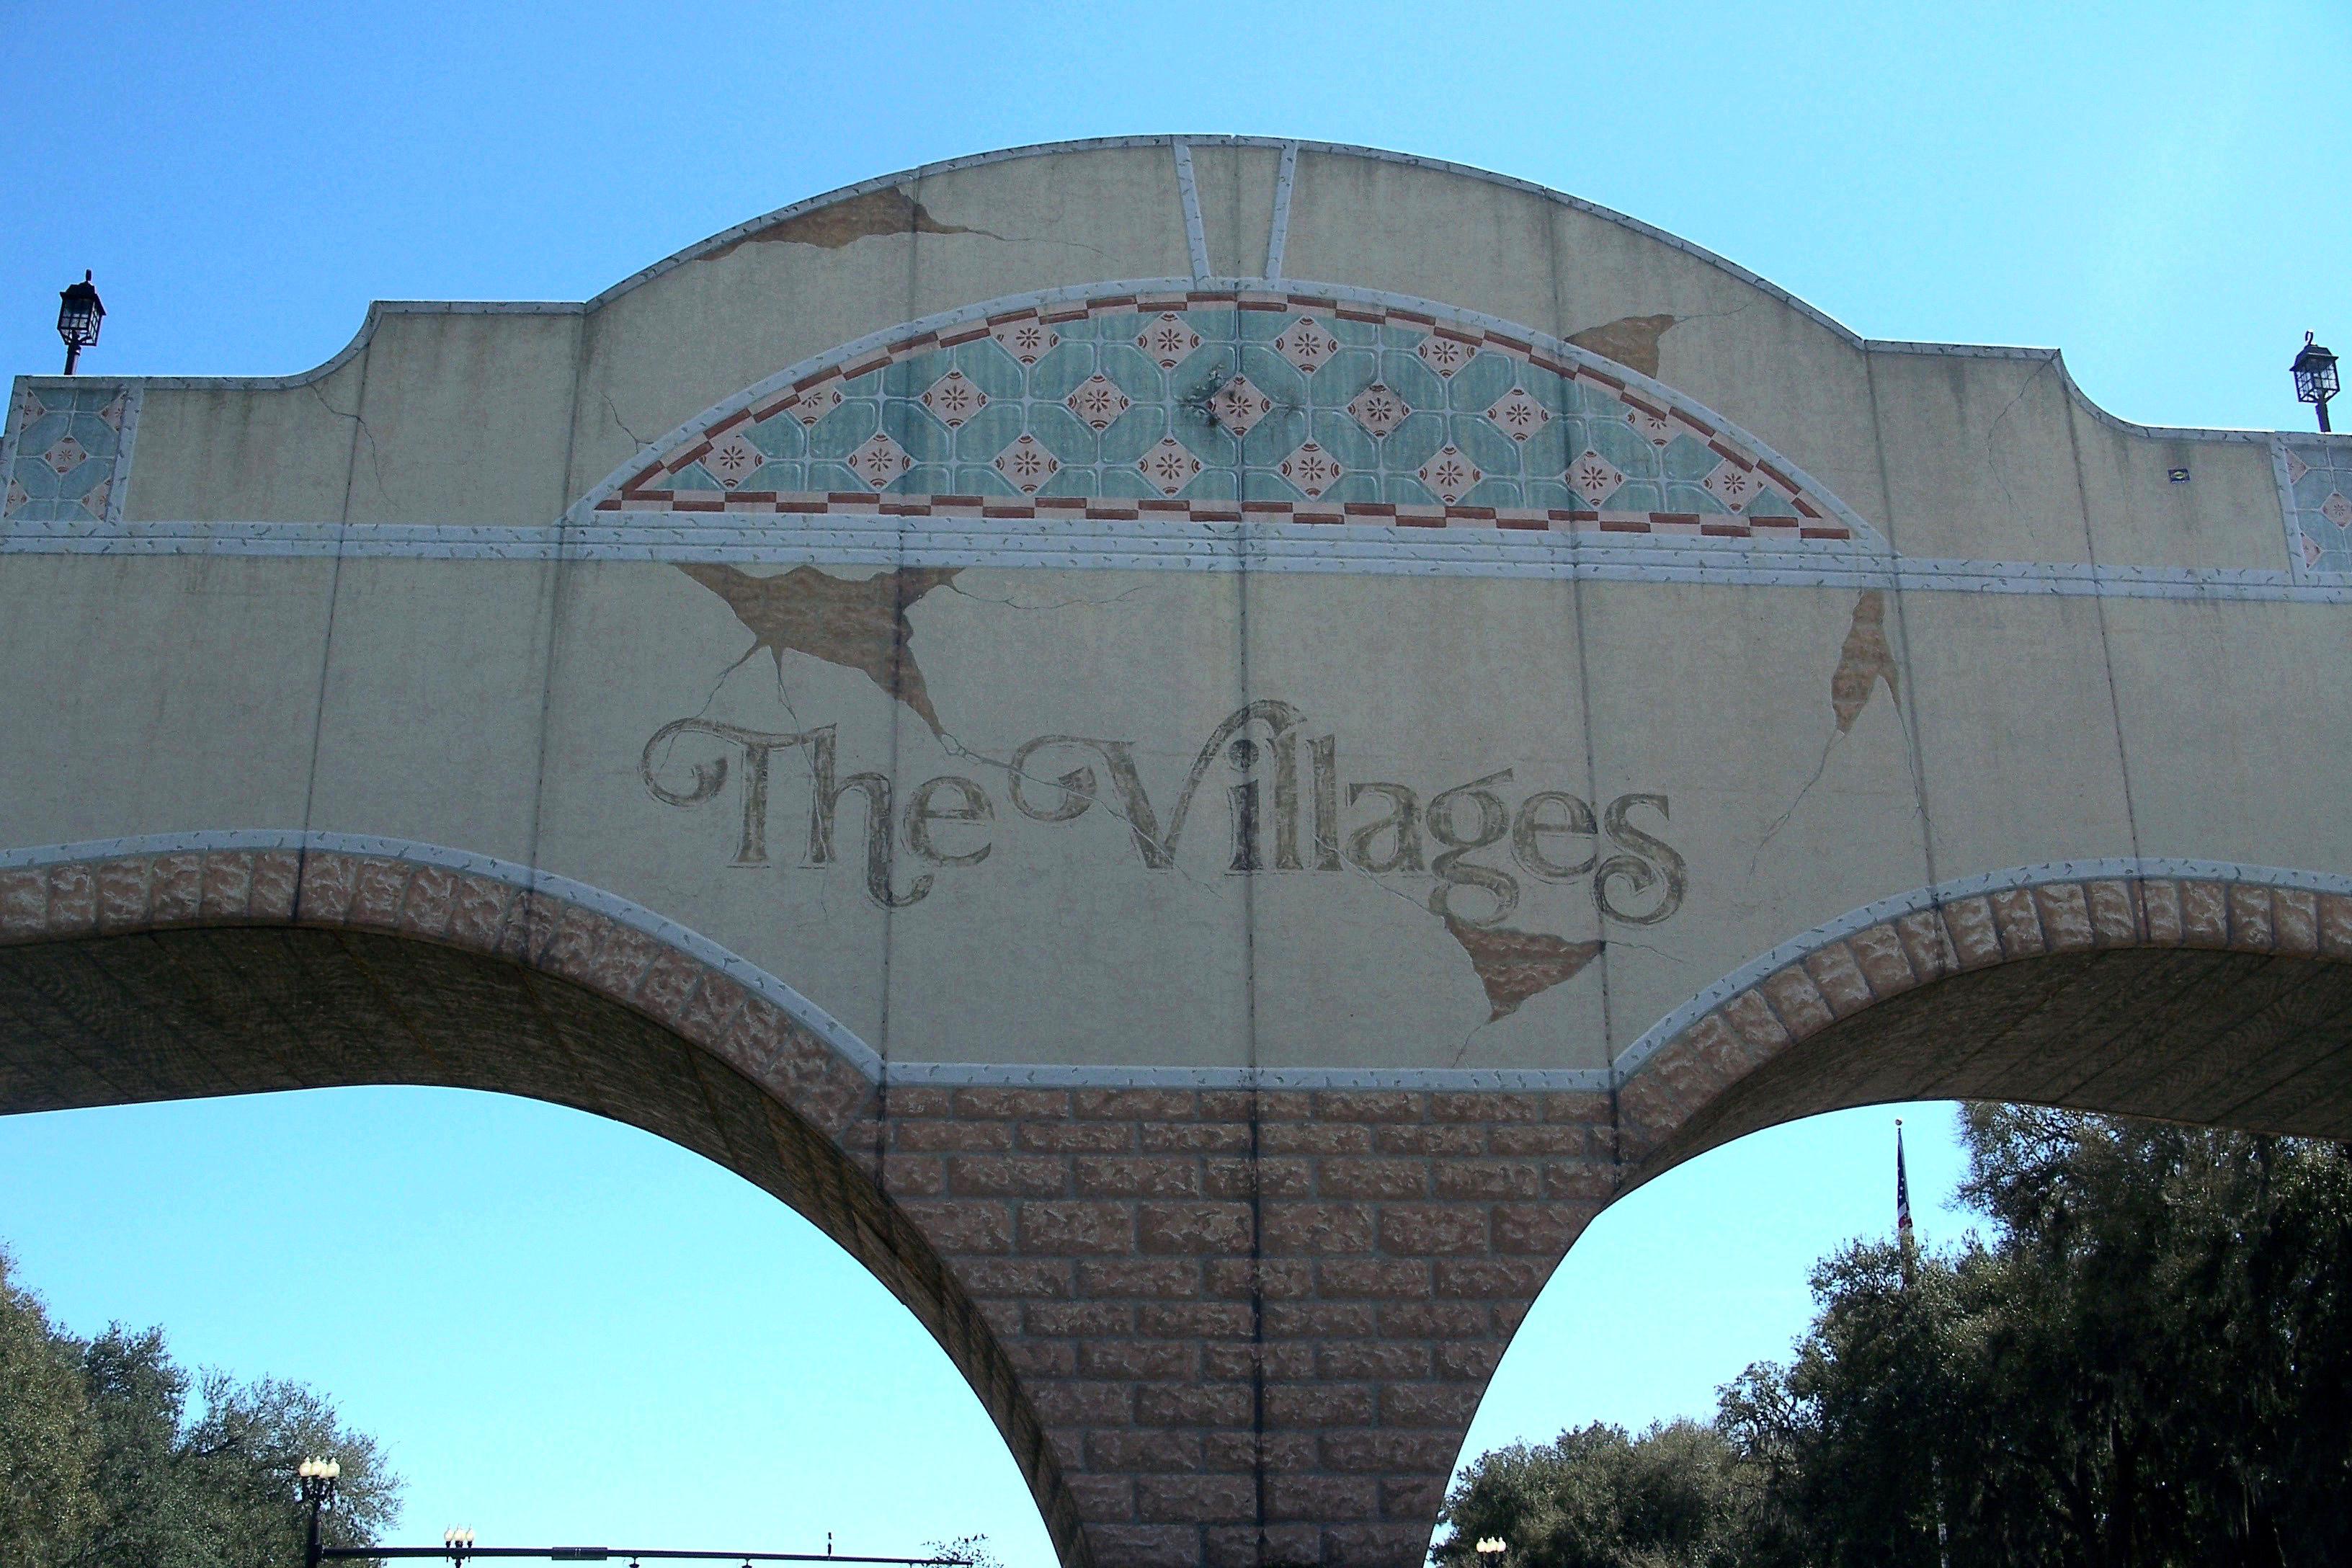 The Villages plans to expand their already massive community by 20,000 homes.